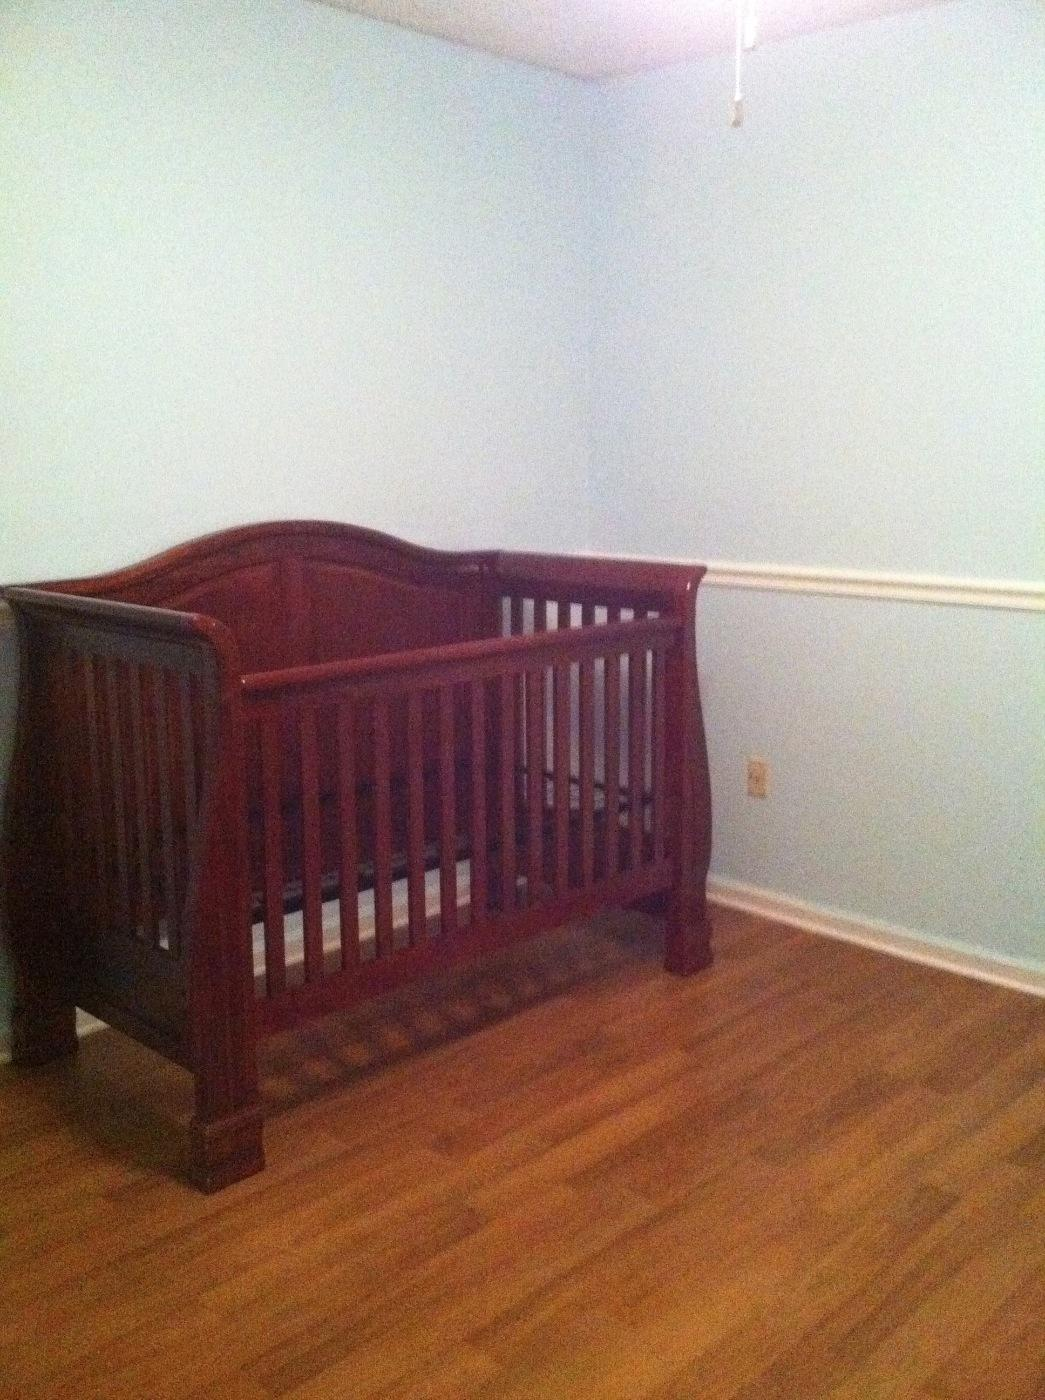 Jardine crib for sale - Find More Jardine Baby Madison Crib For Sale At Up To 90 Off Memphis Tn